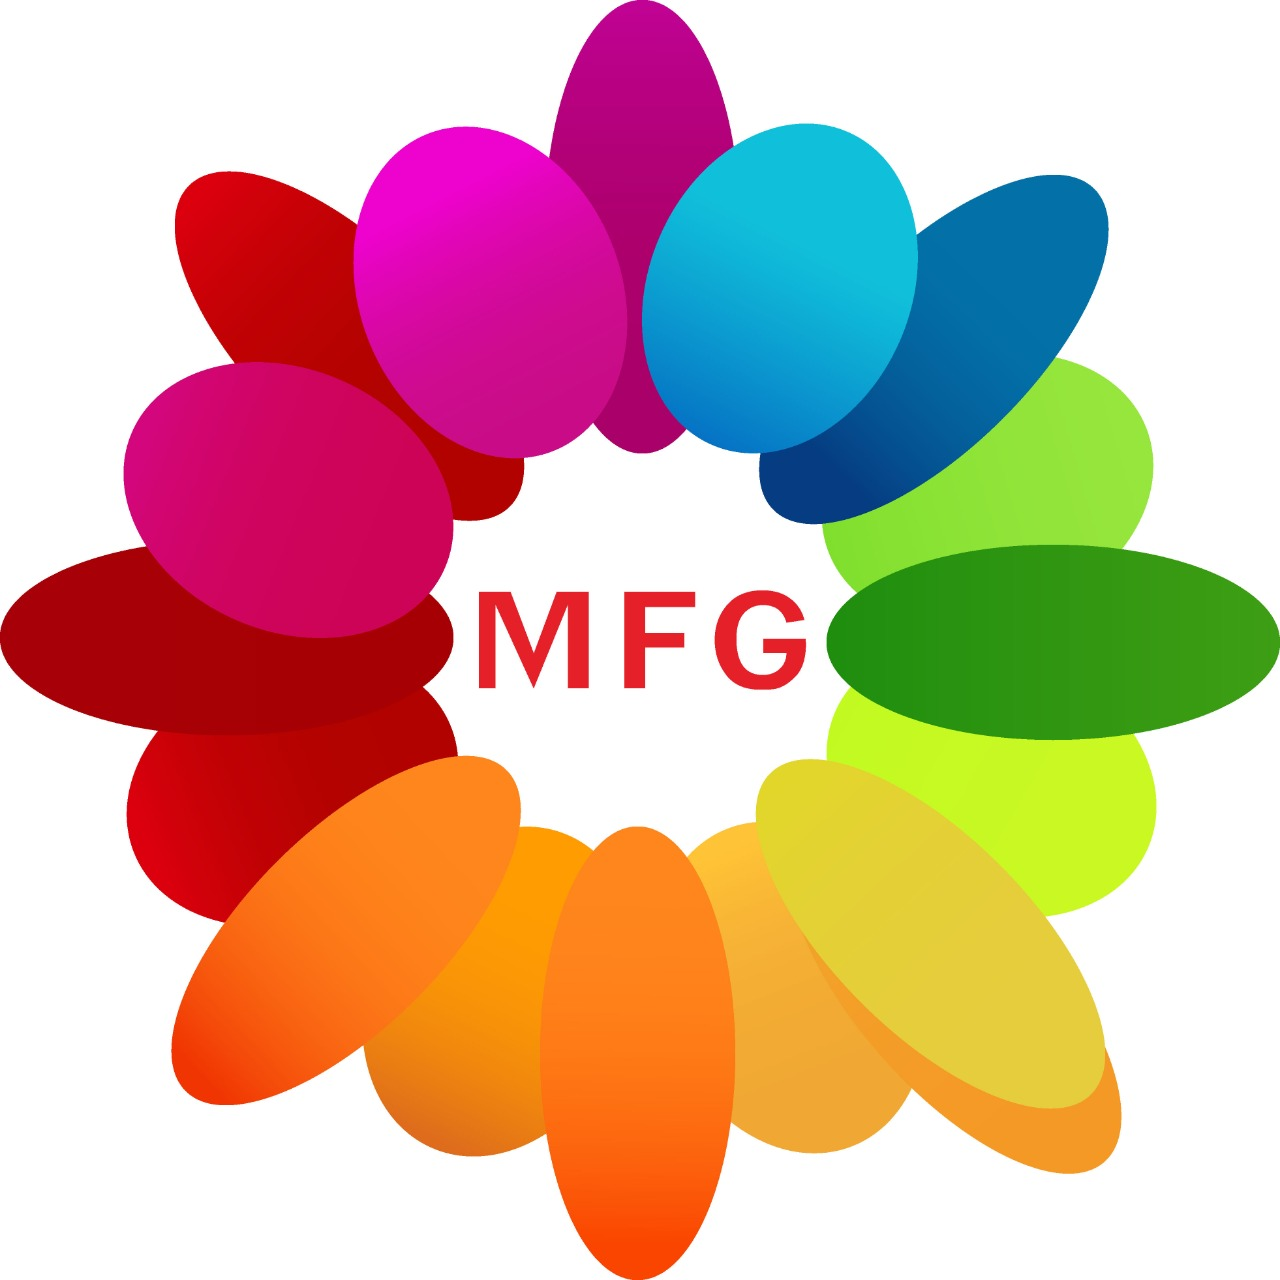 Exotic and classic chocolate bouquet of 60 pieces of ferrero rocher exotic and classic chocolate bouquet of 60 pieces of ferrero rocher chocolates izmirmasajfo